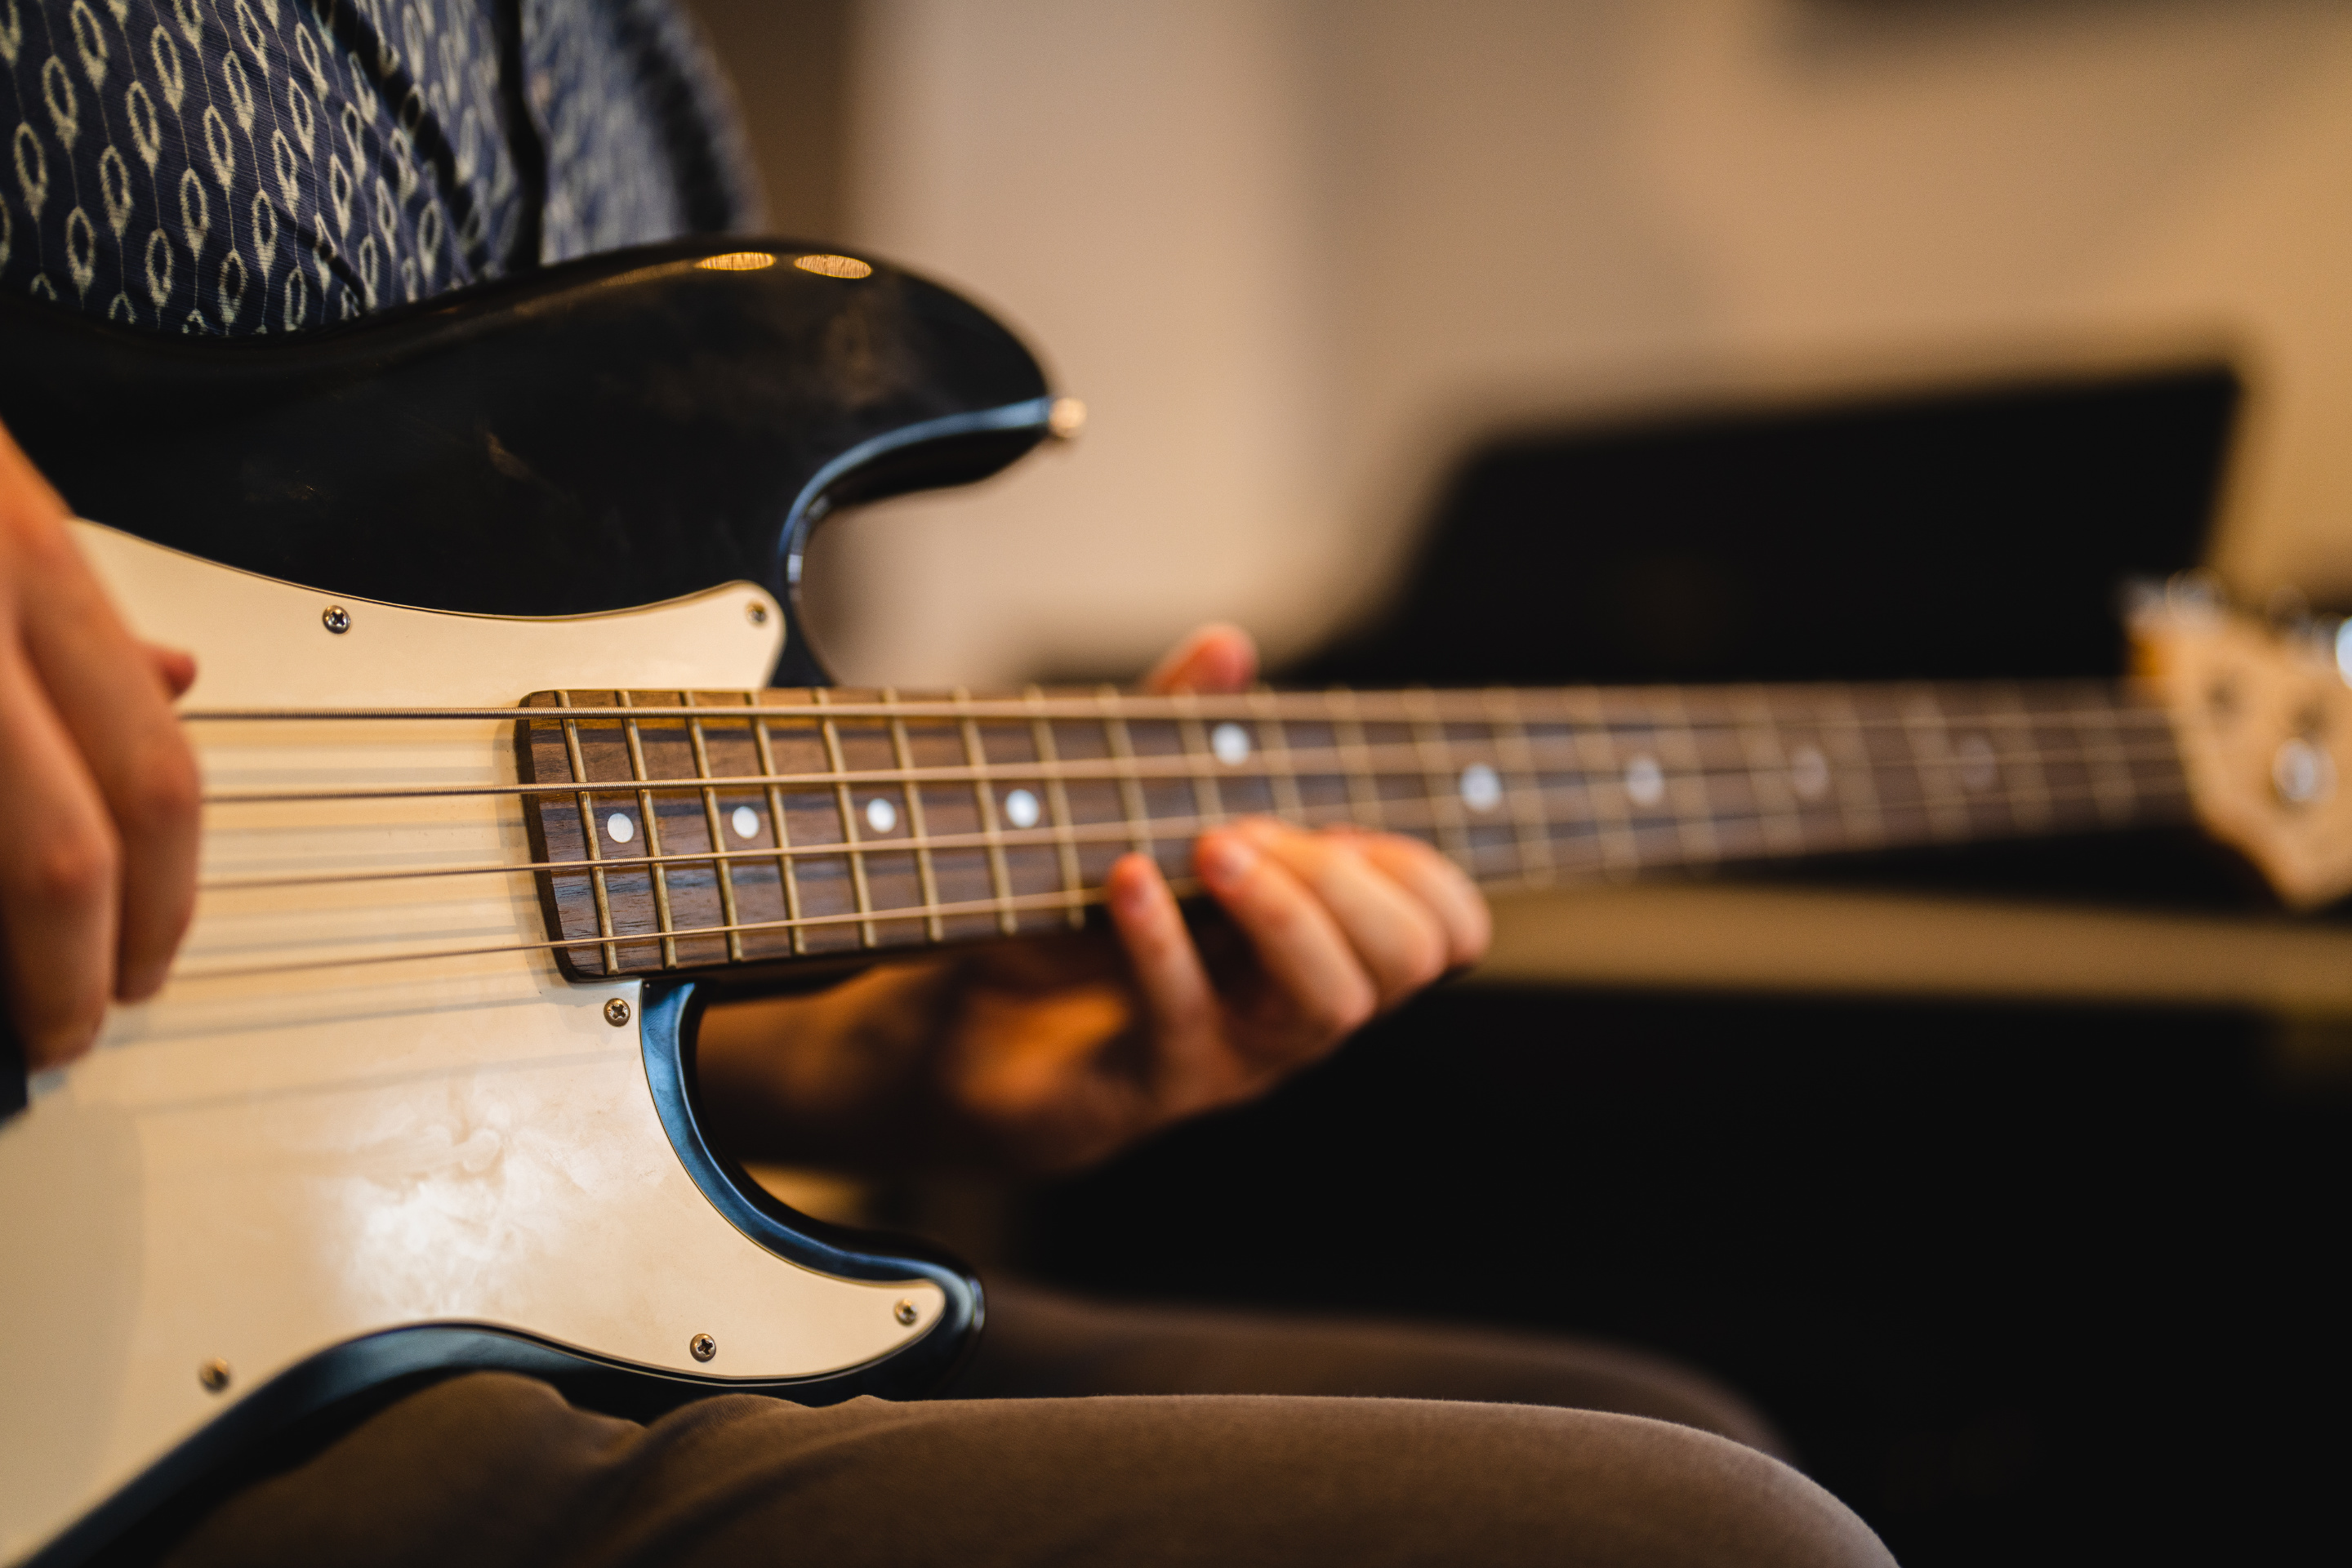 Person playing an electric bass guitar